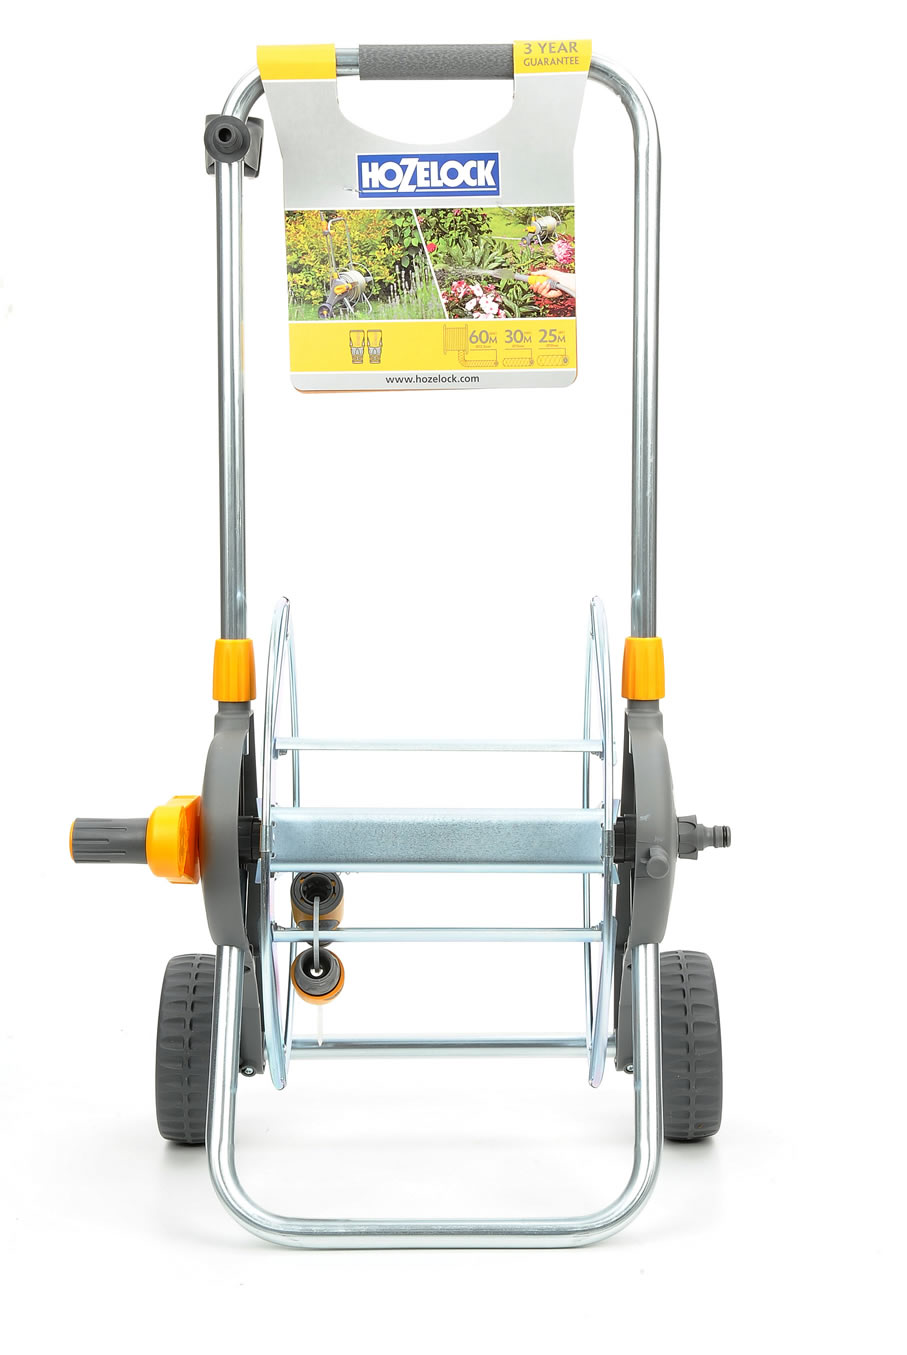 Hozelock Metal Hose Cart, 60m Capacity - 2437 - £46.99 | Garden4Less